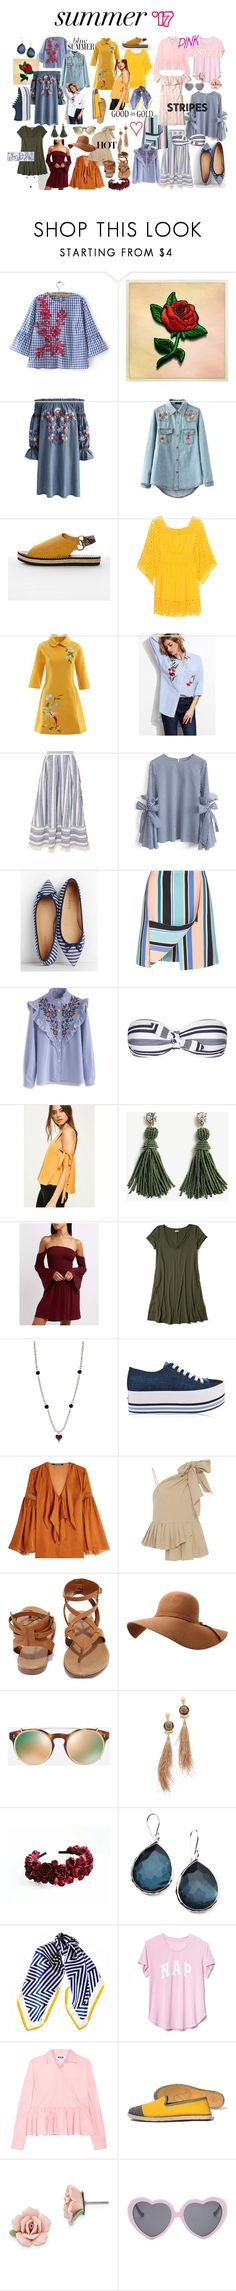 Summer '17 by rebellok on Polyvore featuring Plein Sud Jeanius, Chicwish, Hollister Co., Charlotte Russe, Roberto Cavalli, Sea, New York, MSGM, Missguided, WithChic and Opening Ceremony